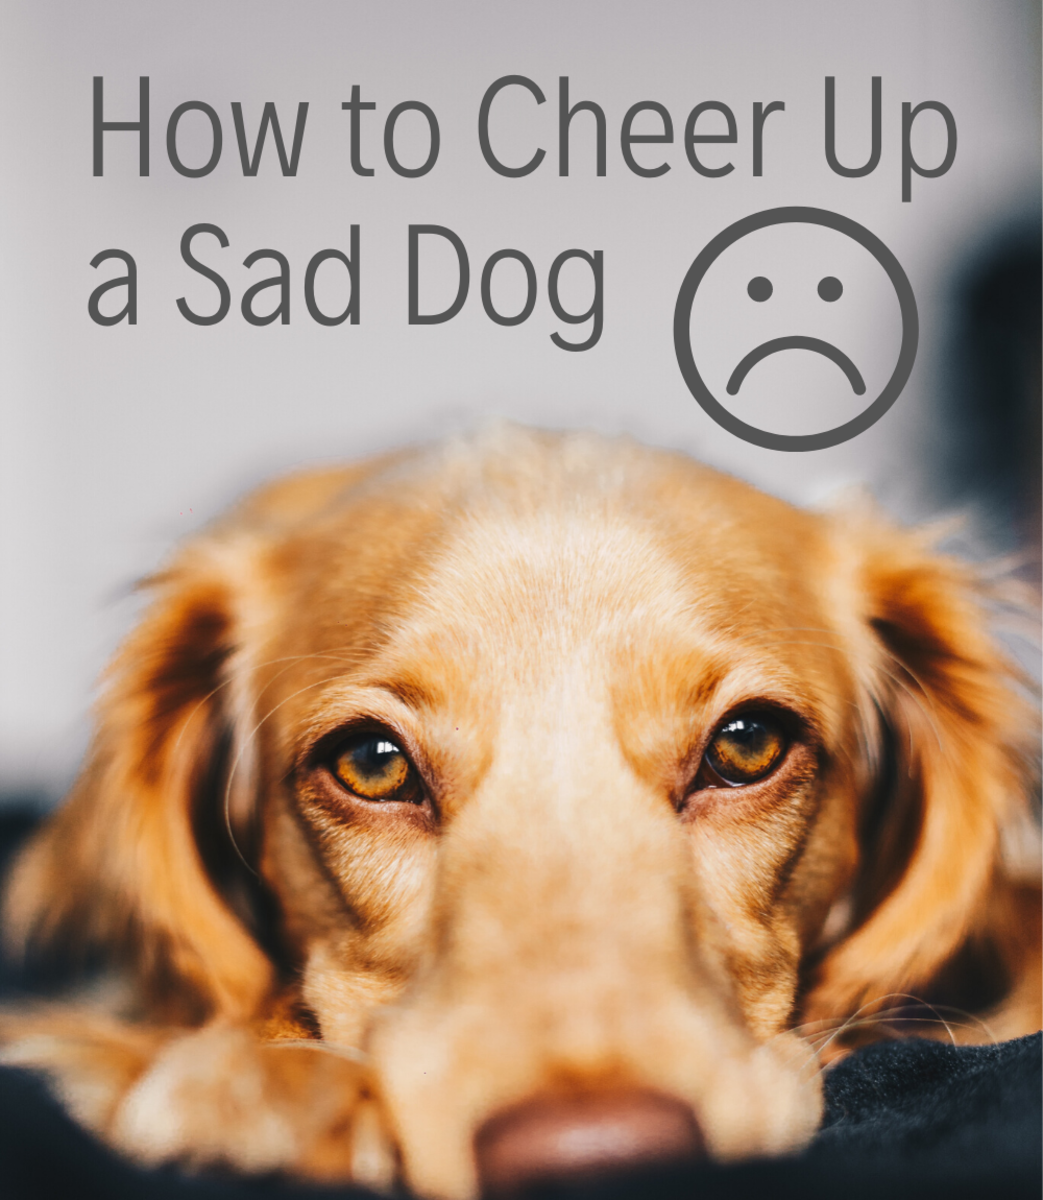 What to do if your dog is sad or depressed.